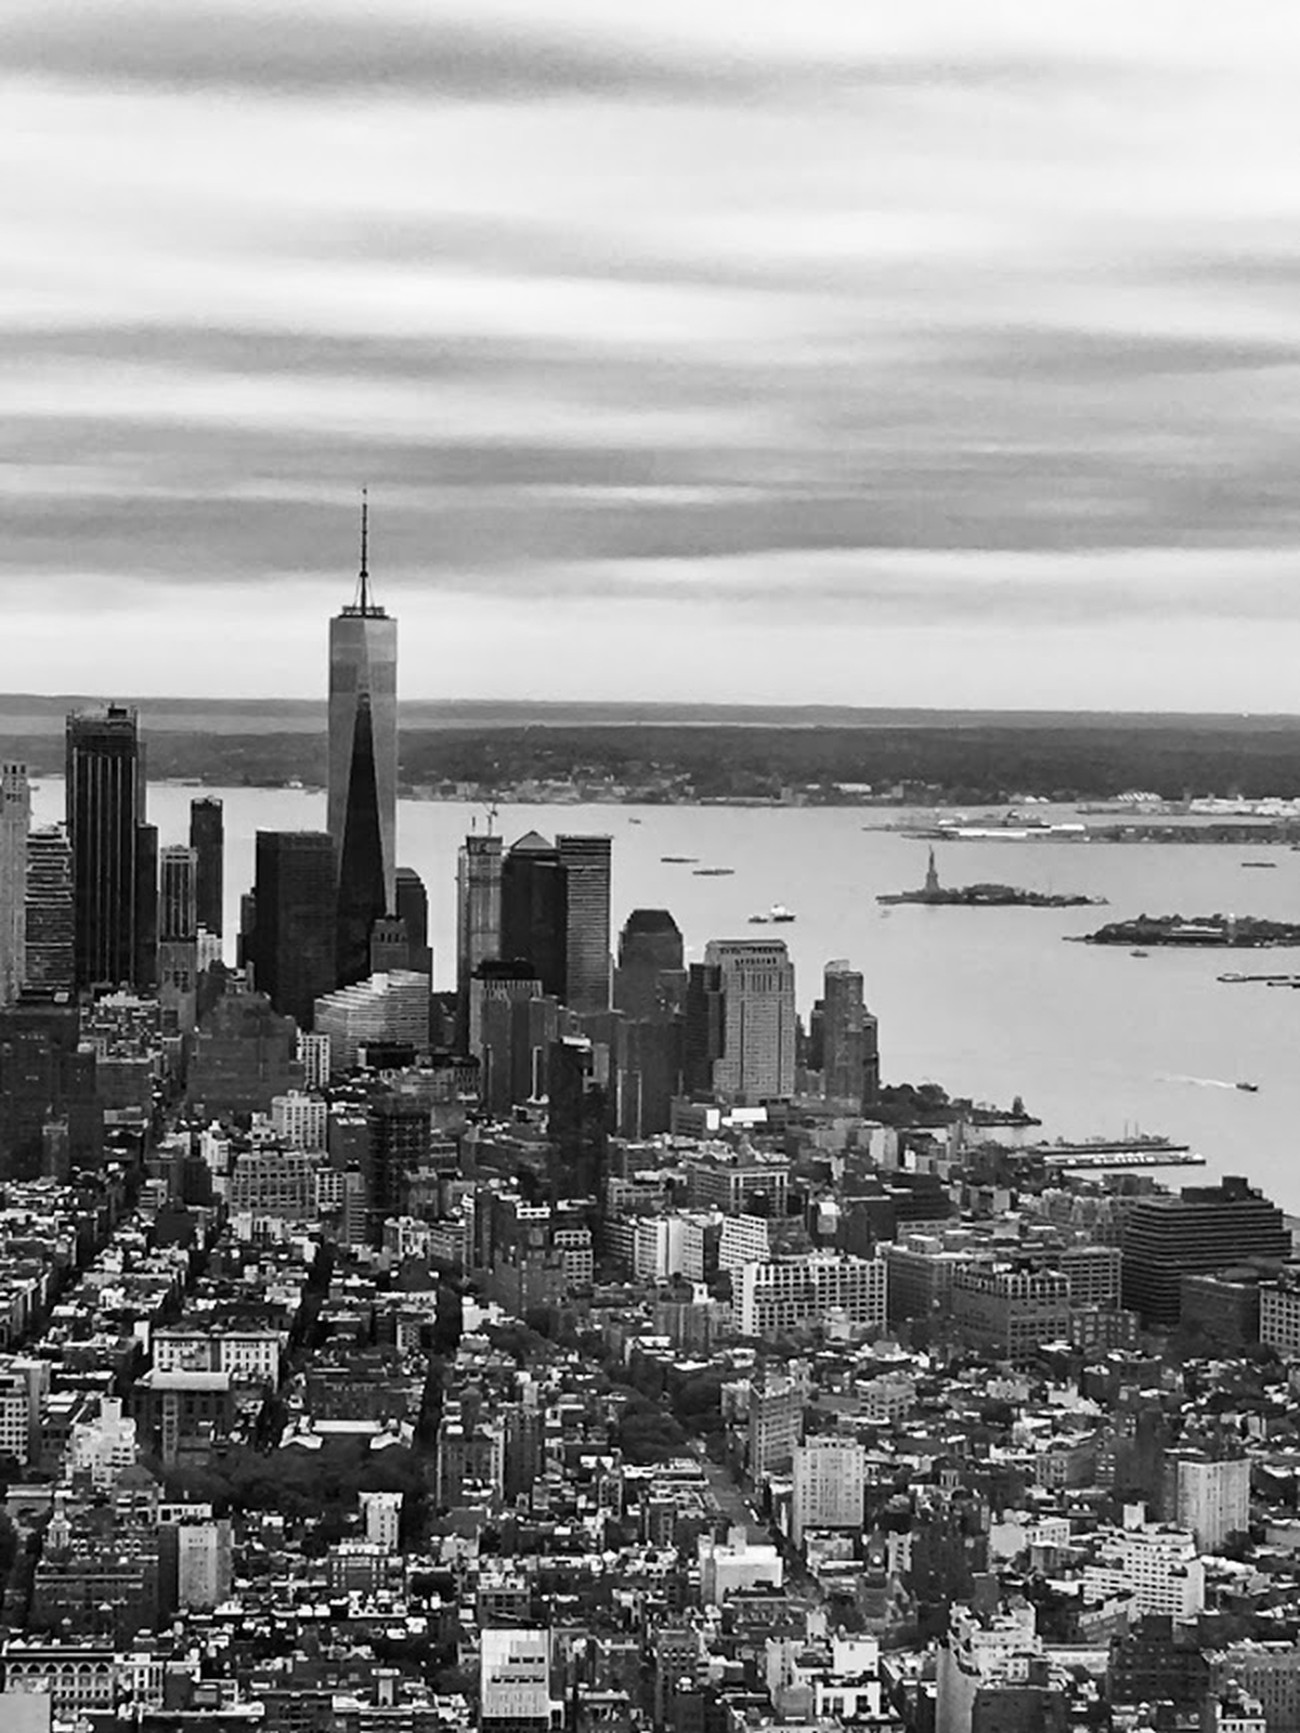 My first trip to New York was last year in April, my birthday being September 11th, this was definitely for me, a Moody photo.  The humble but proud symbol, our Statue of Liberty has a clear view of Manhattan and the new One World Trade Center.